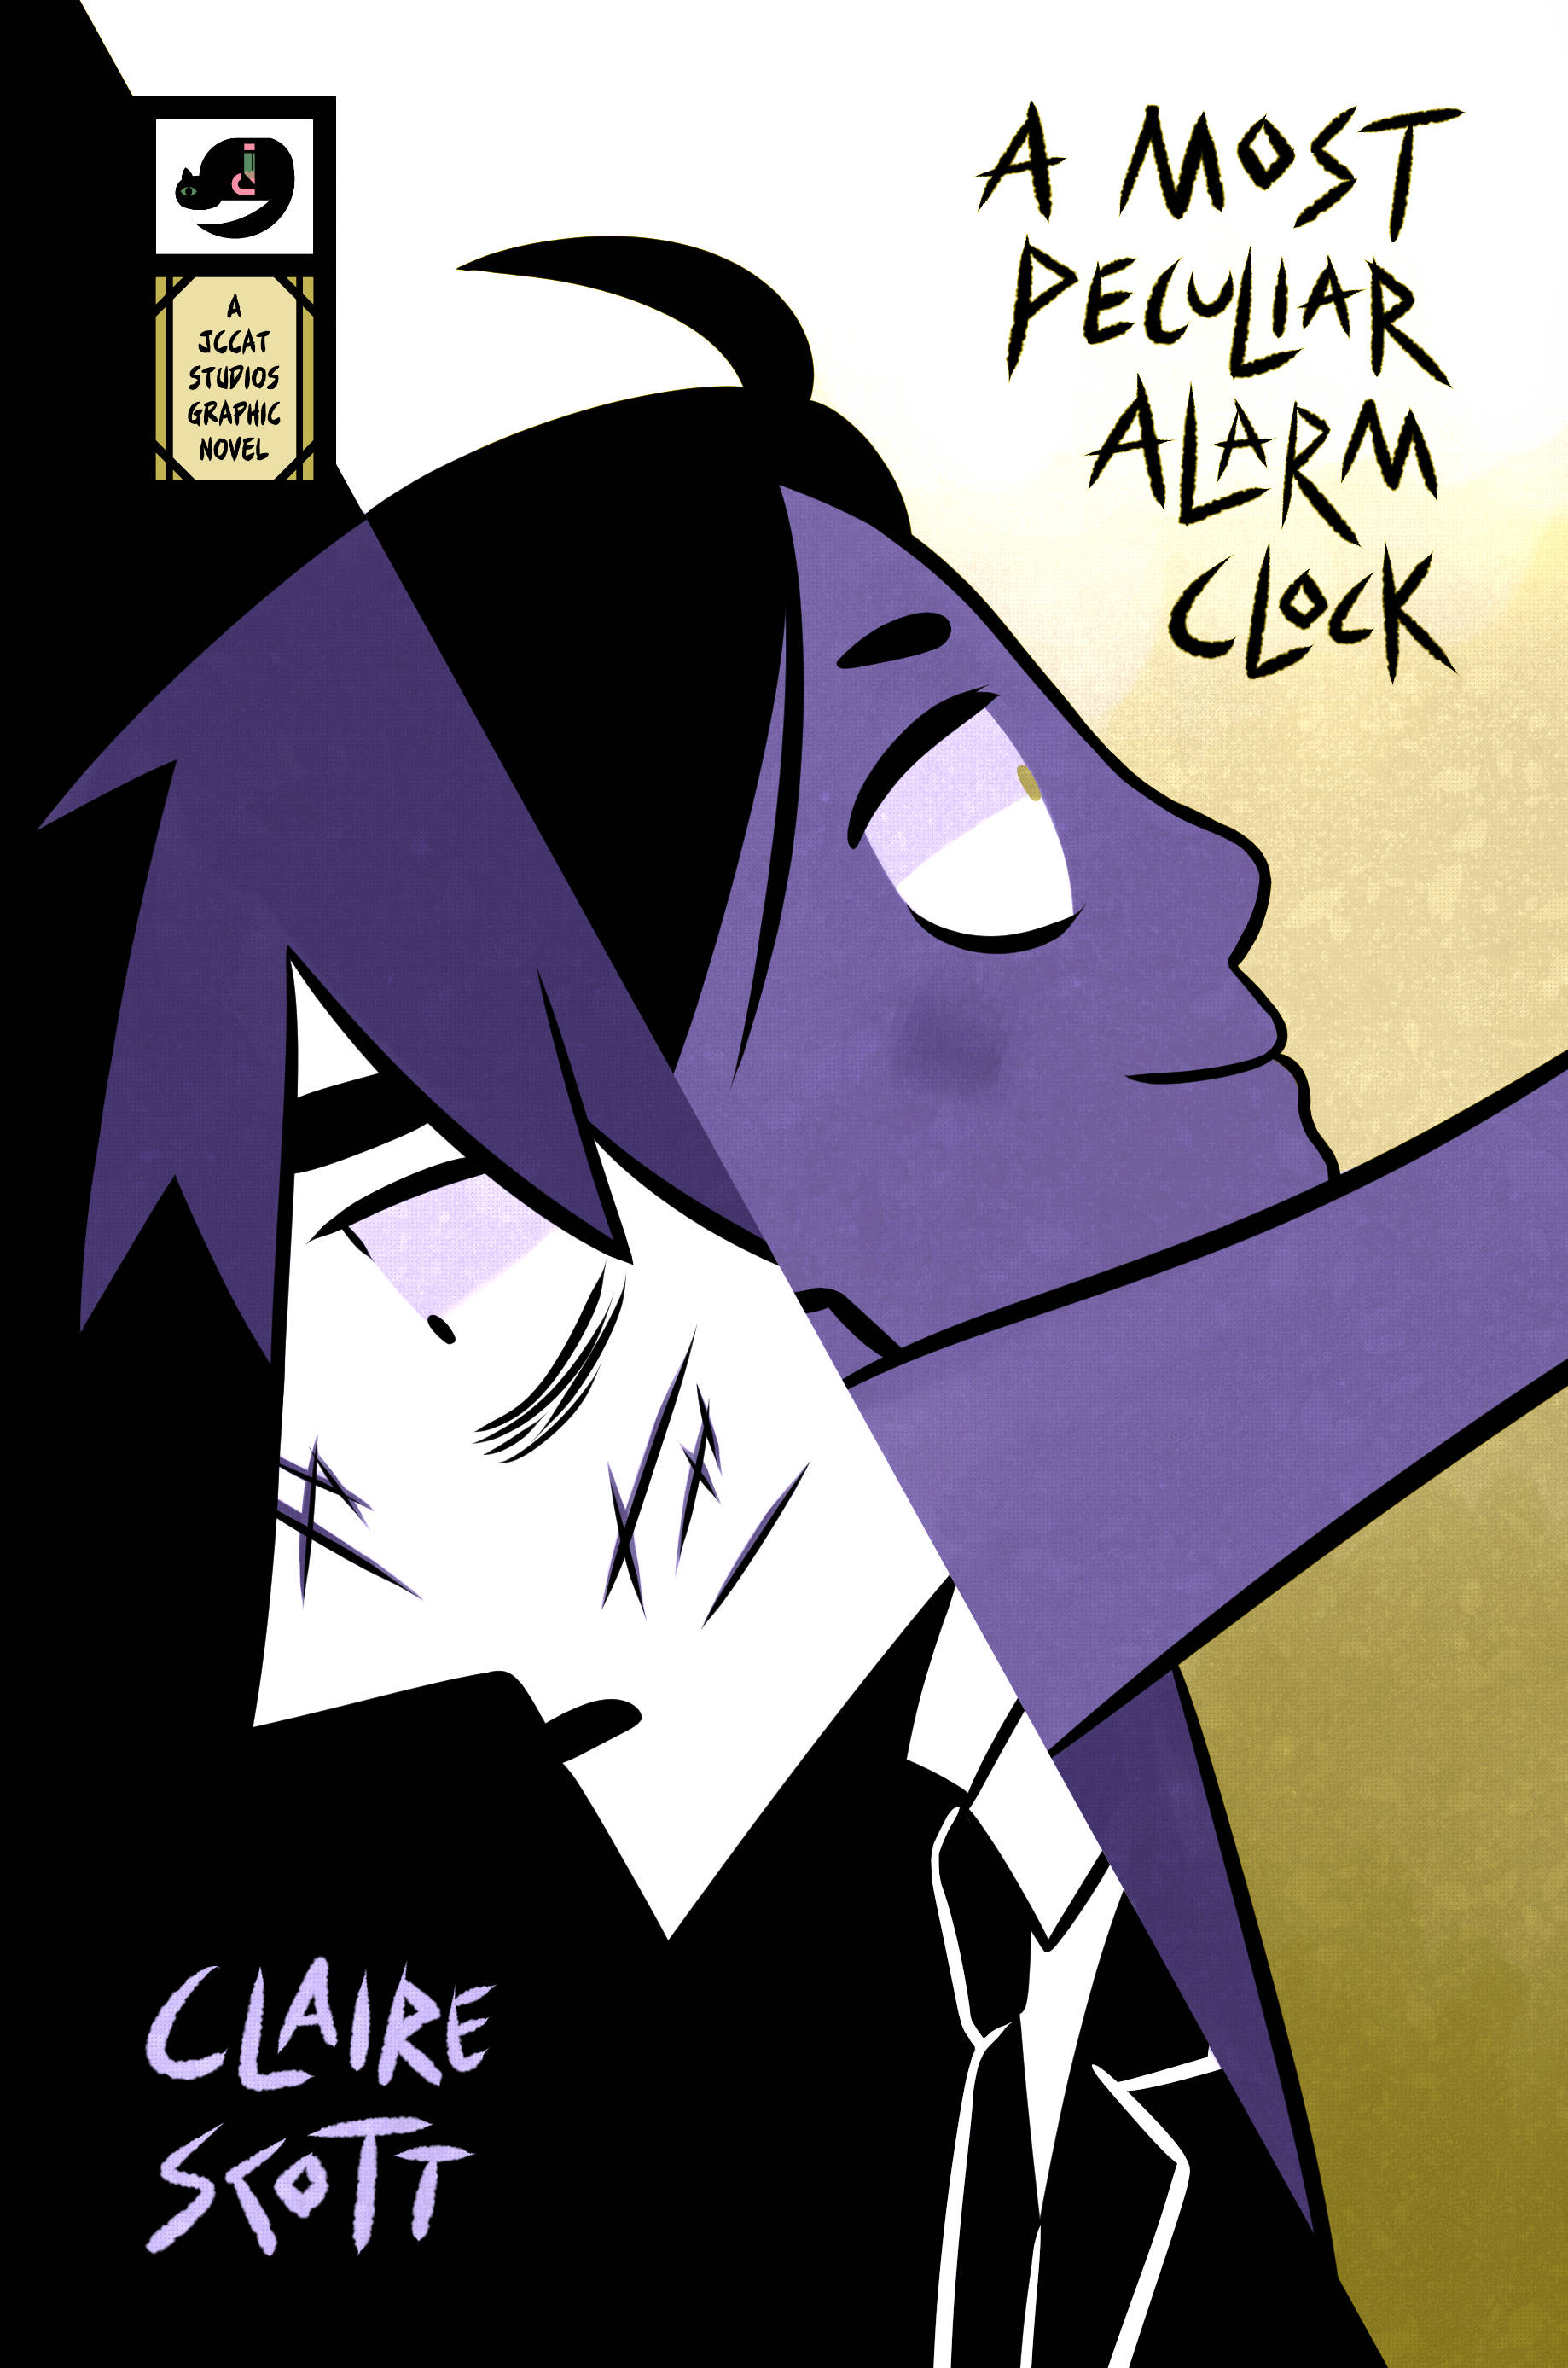 """""""A Most Peculiar Alarm Clock,"""" a new graphic novel by Claire Scott, tells the story of an unlucky man that comes into possession of the titular alarm clock. Scott said a classic """"Twilight Zone"""" segment influence the story. (Courtesy Photo 